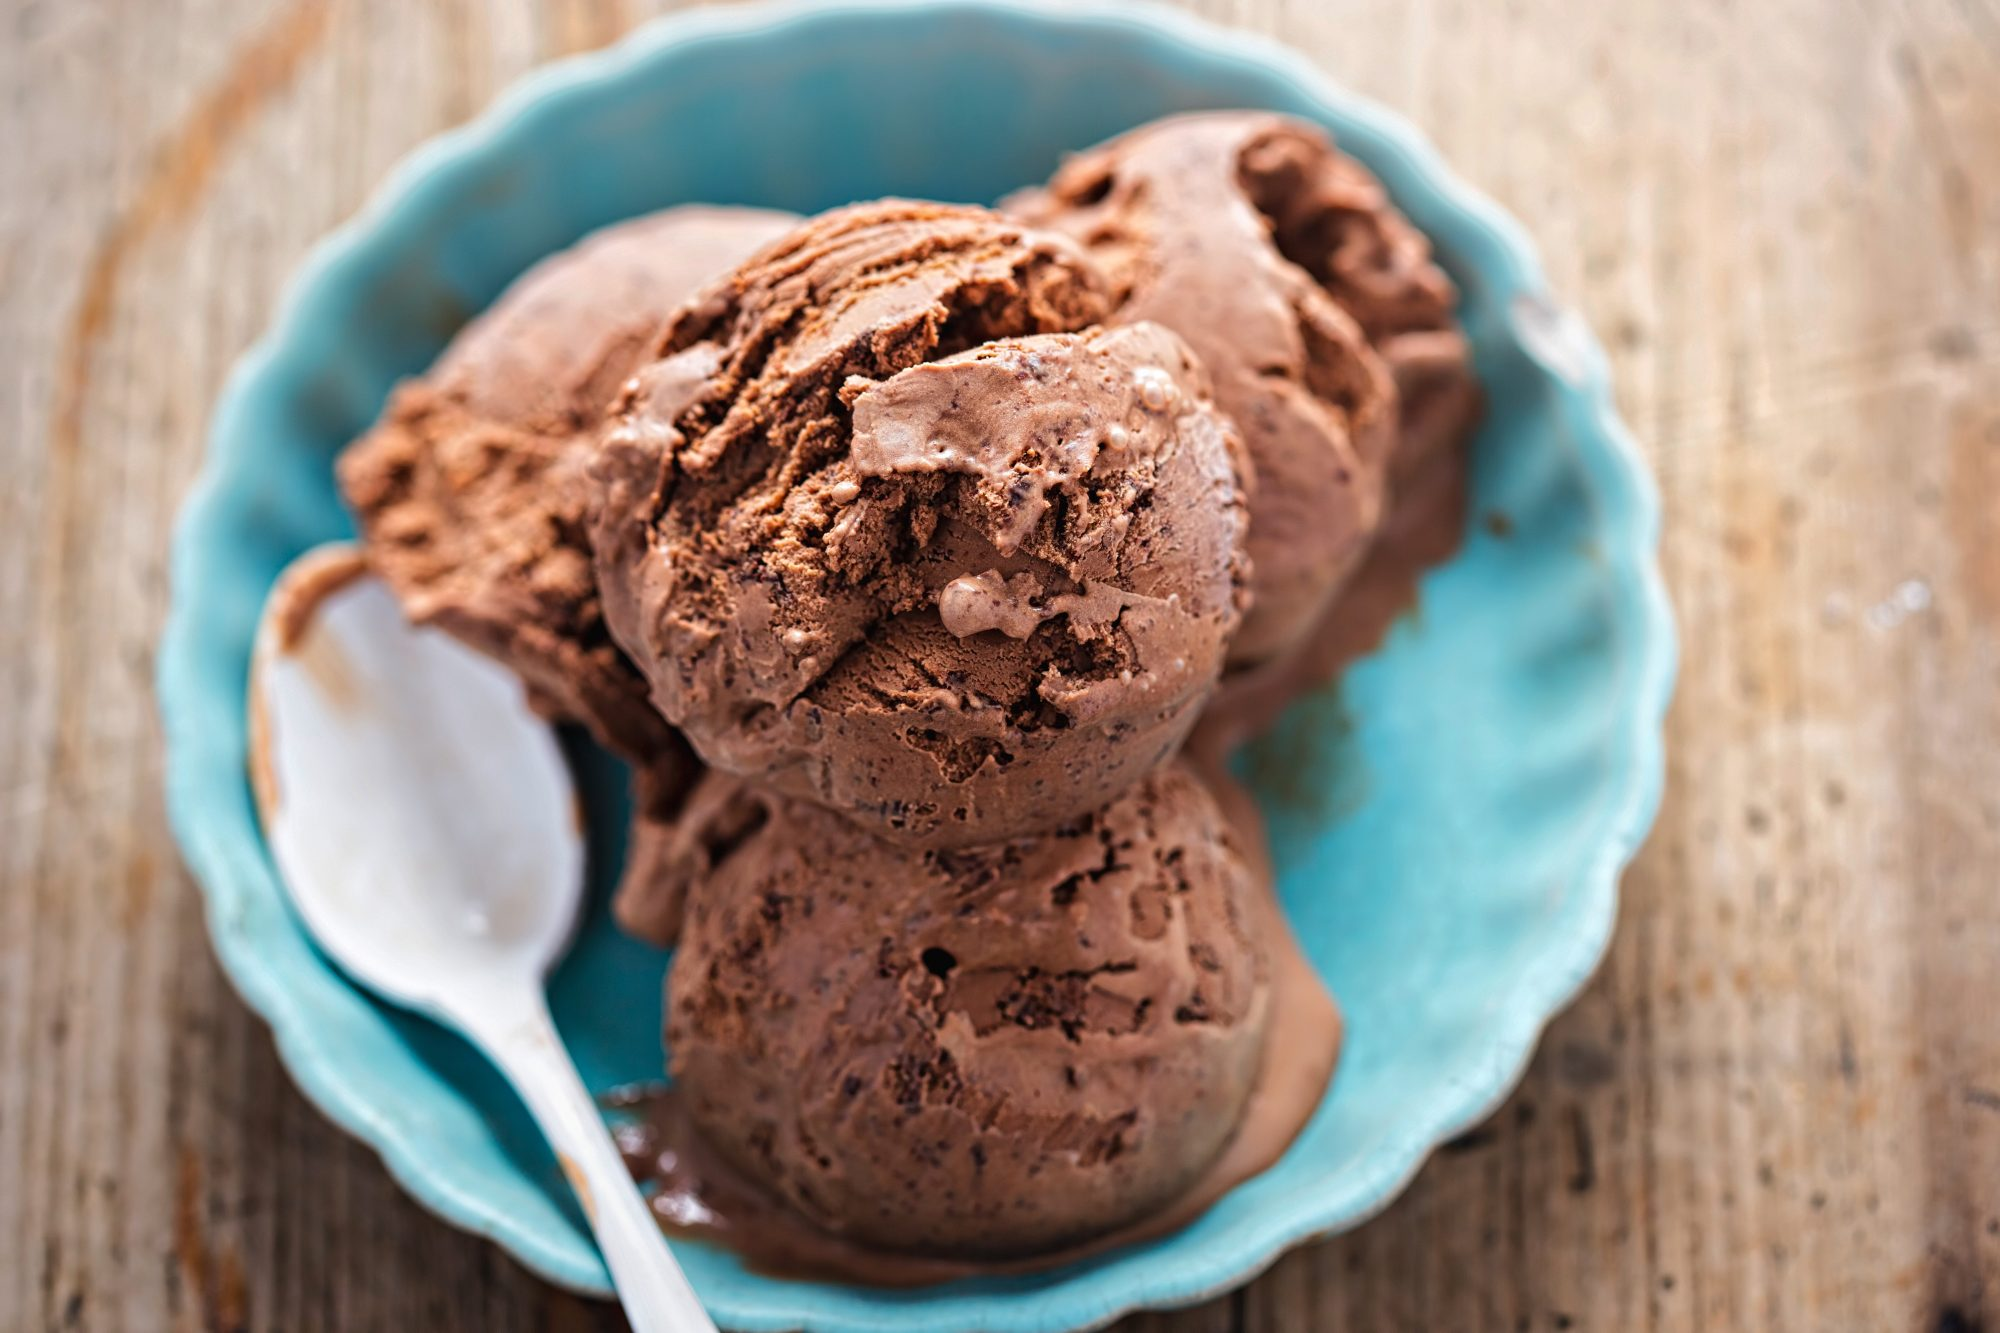 We Tried 13 Brands of Chocolate Ice Cream to Find the Best One